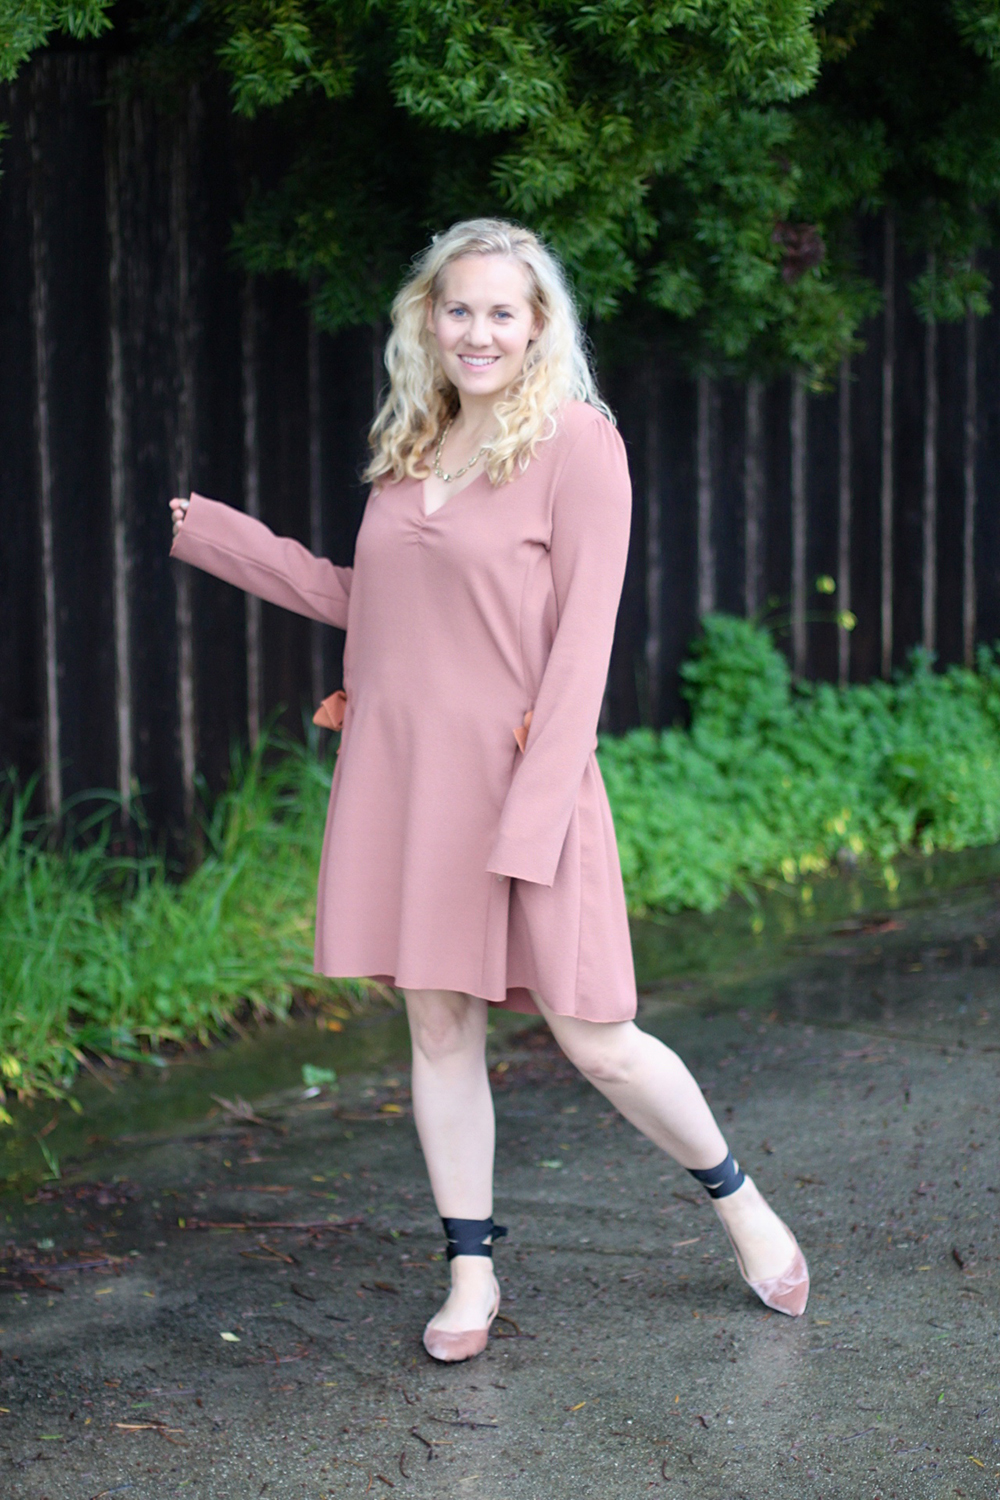 Dusty Pink Dress-See by Chloe-Valentines Day Outfit-Outfit Inspiration-Ankle Tie Flats-Have Need Want 6